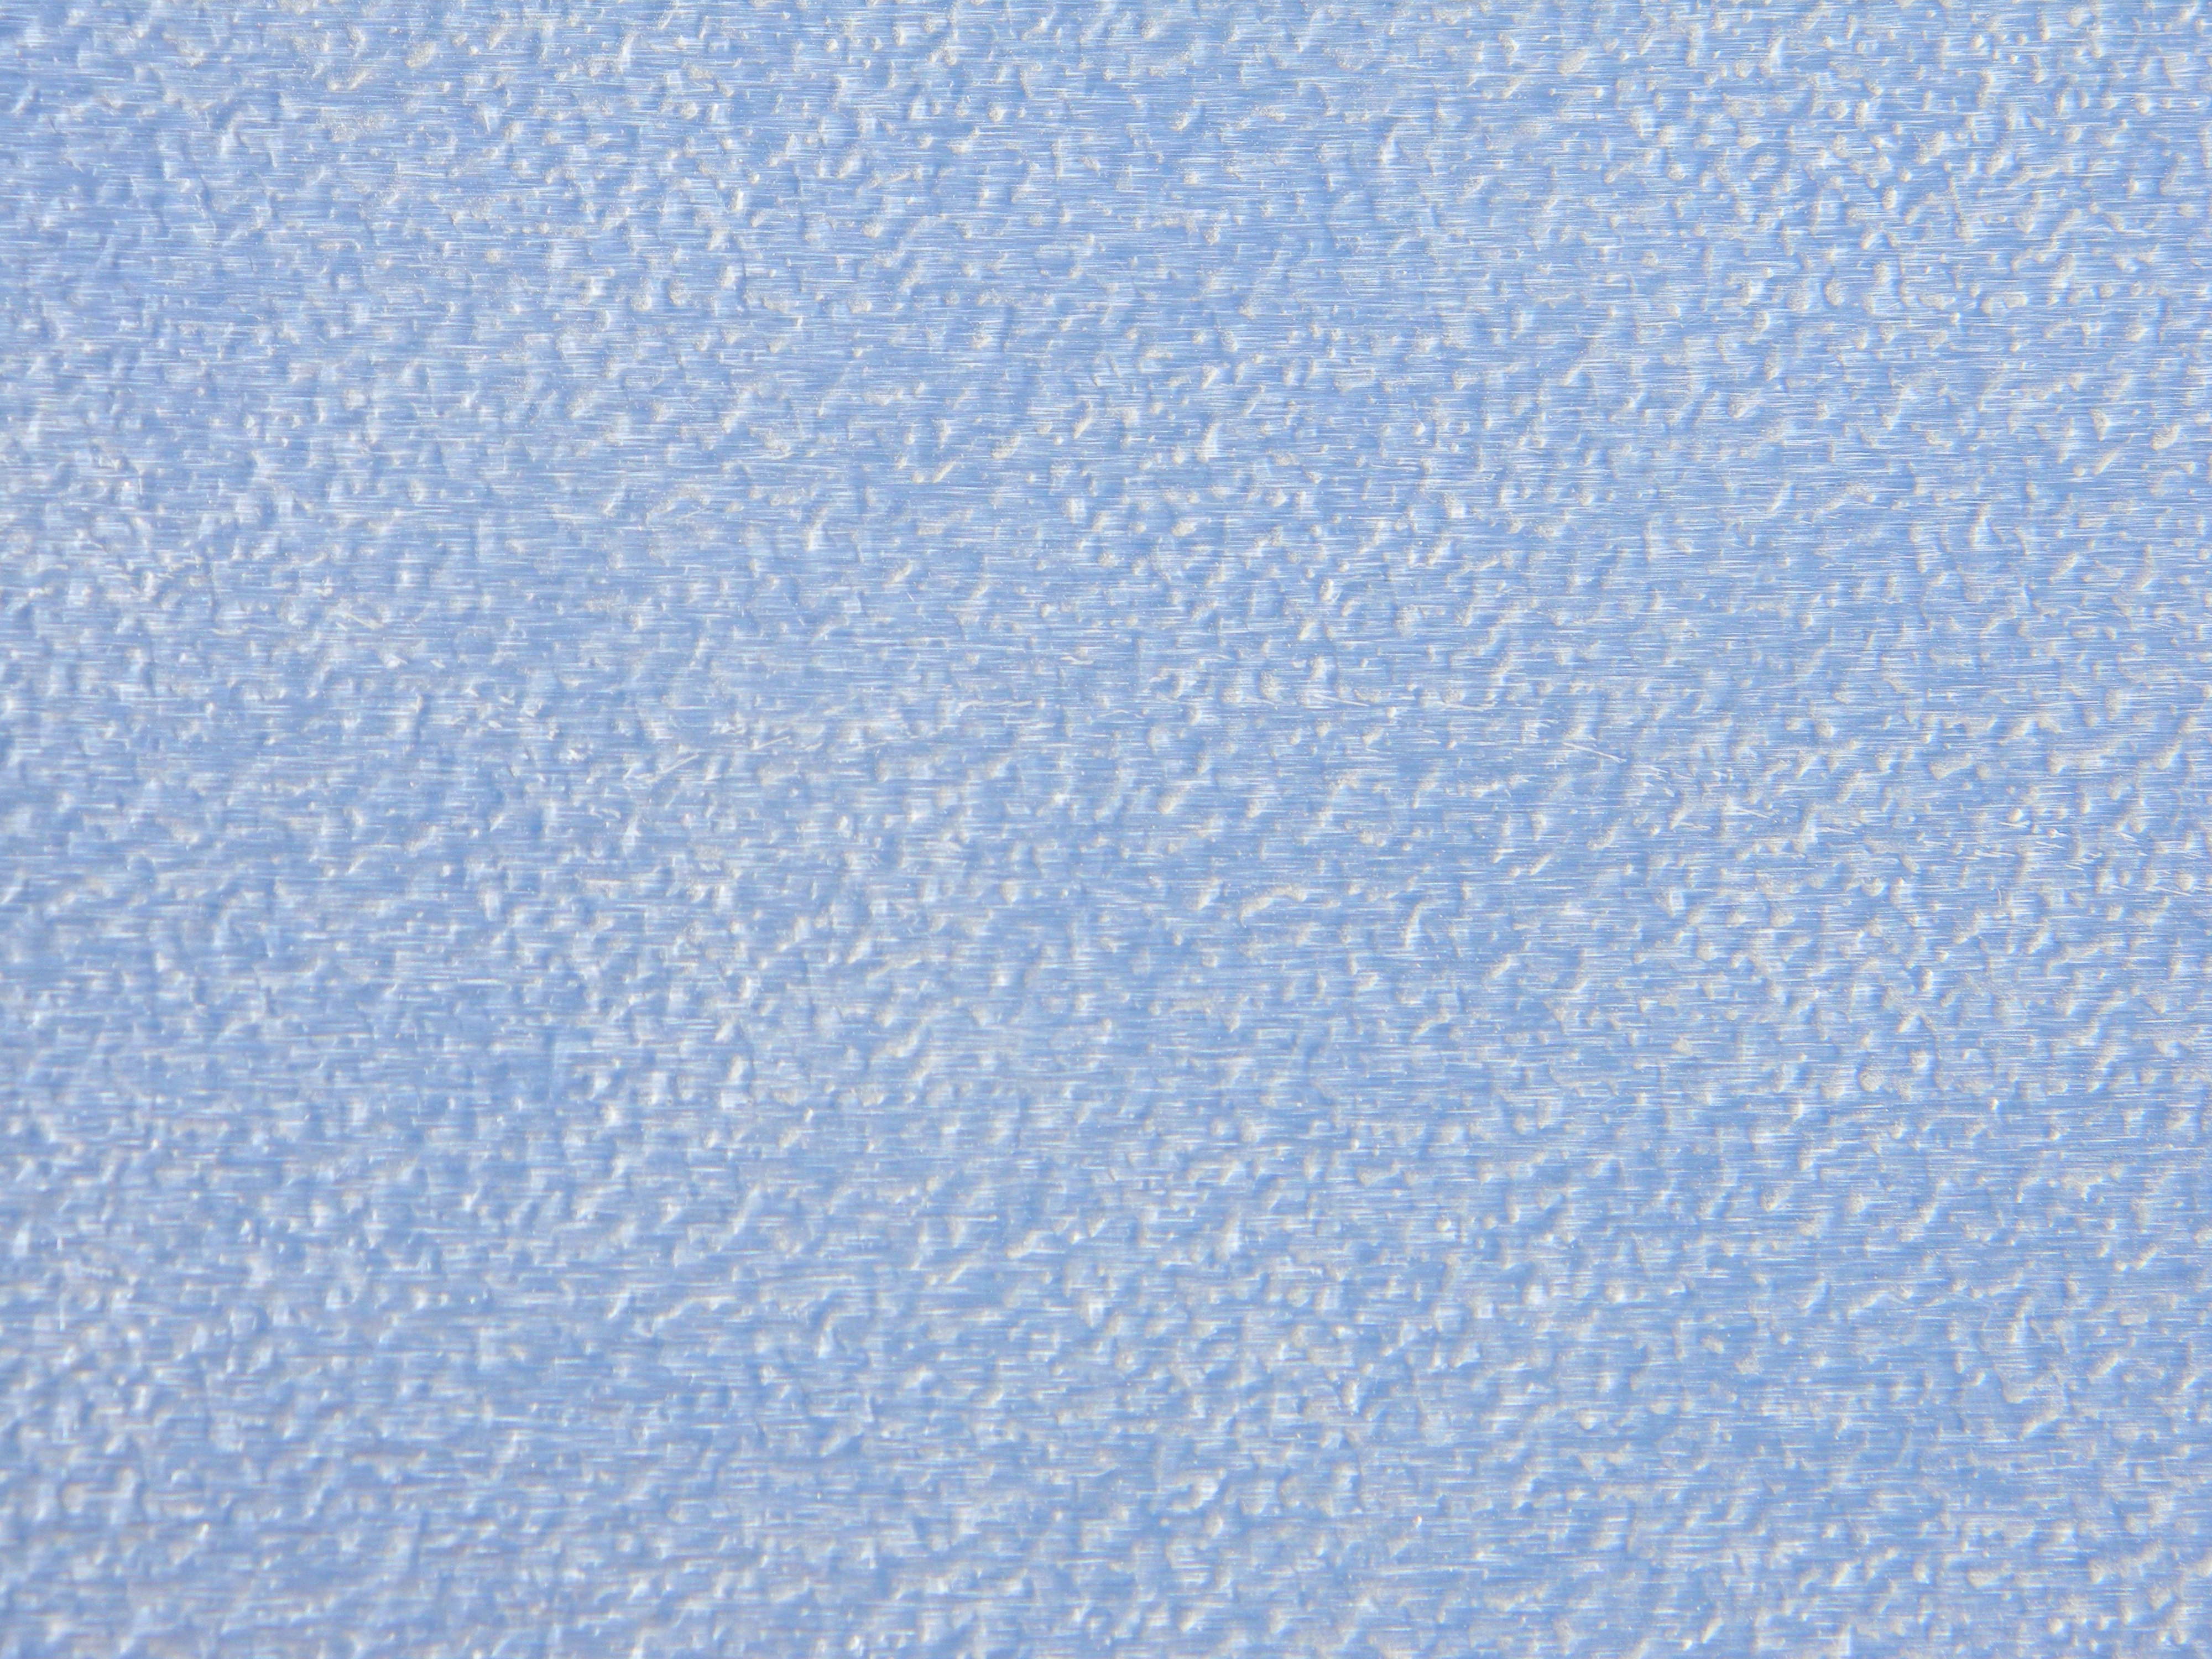 Cosmetic Stucco Embossed Aluminum Sheet 8 Quot X 72 Quot The